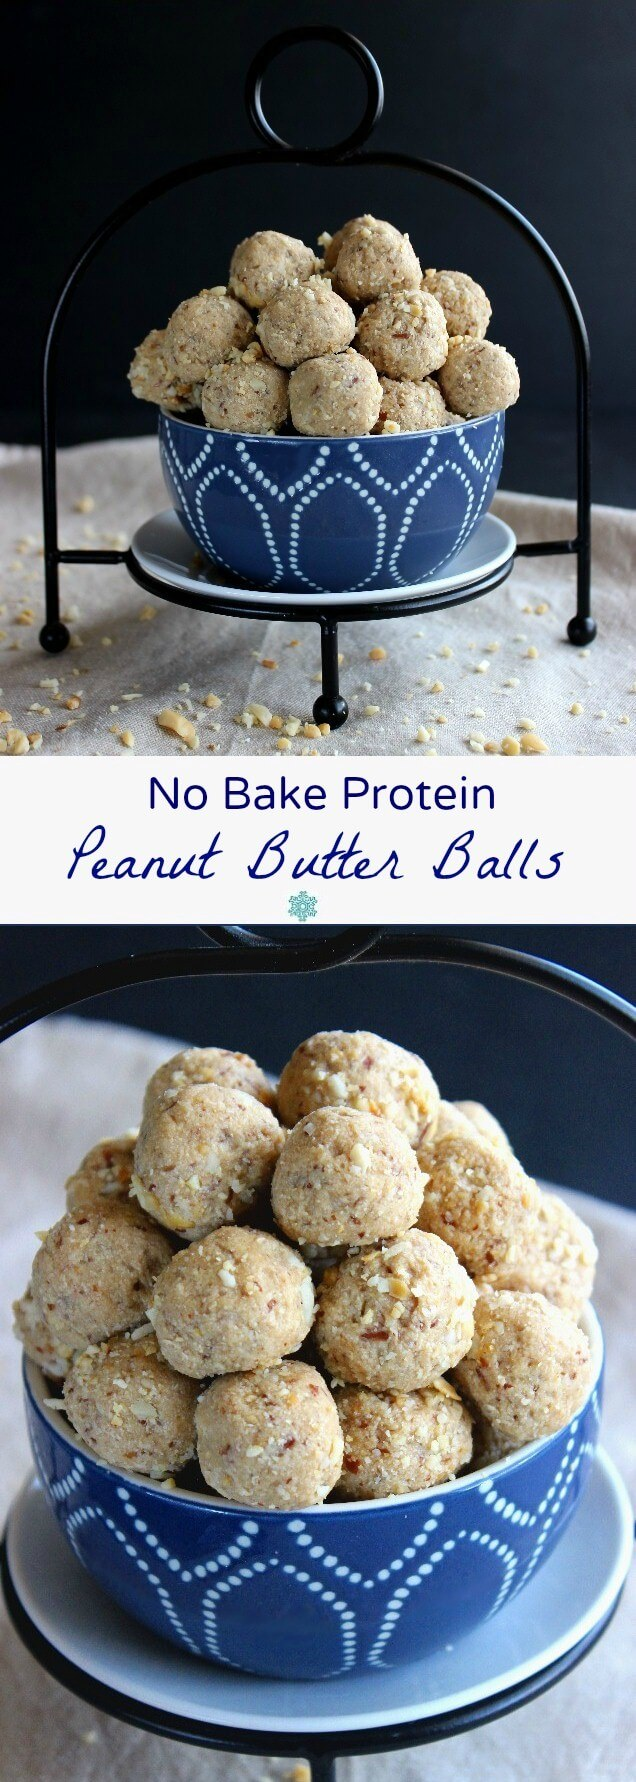 No Bake Protein Peanut Butter Balls are an easy and healthy treat that you can pop right into your mouth. Energy packed - 5 ingredients!